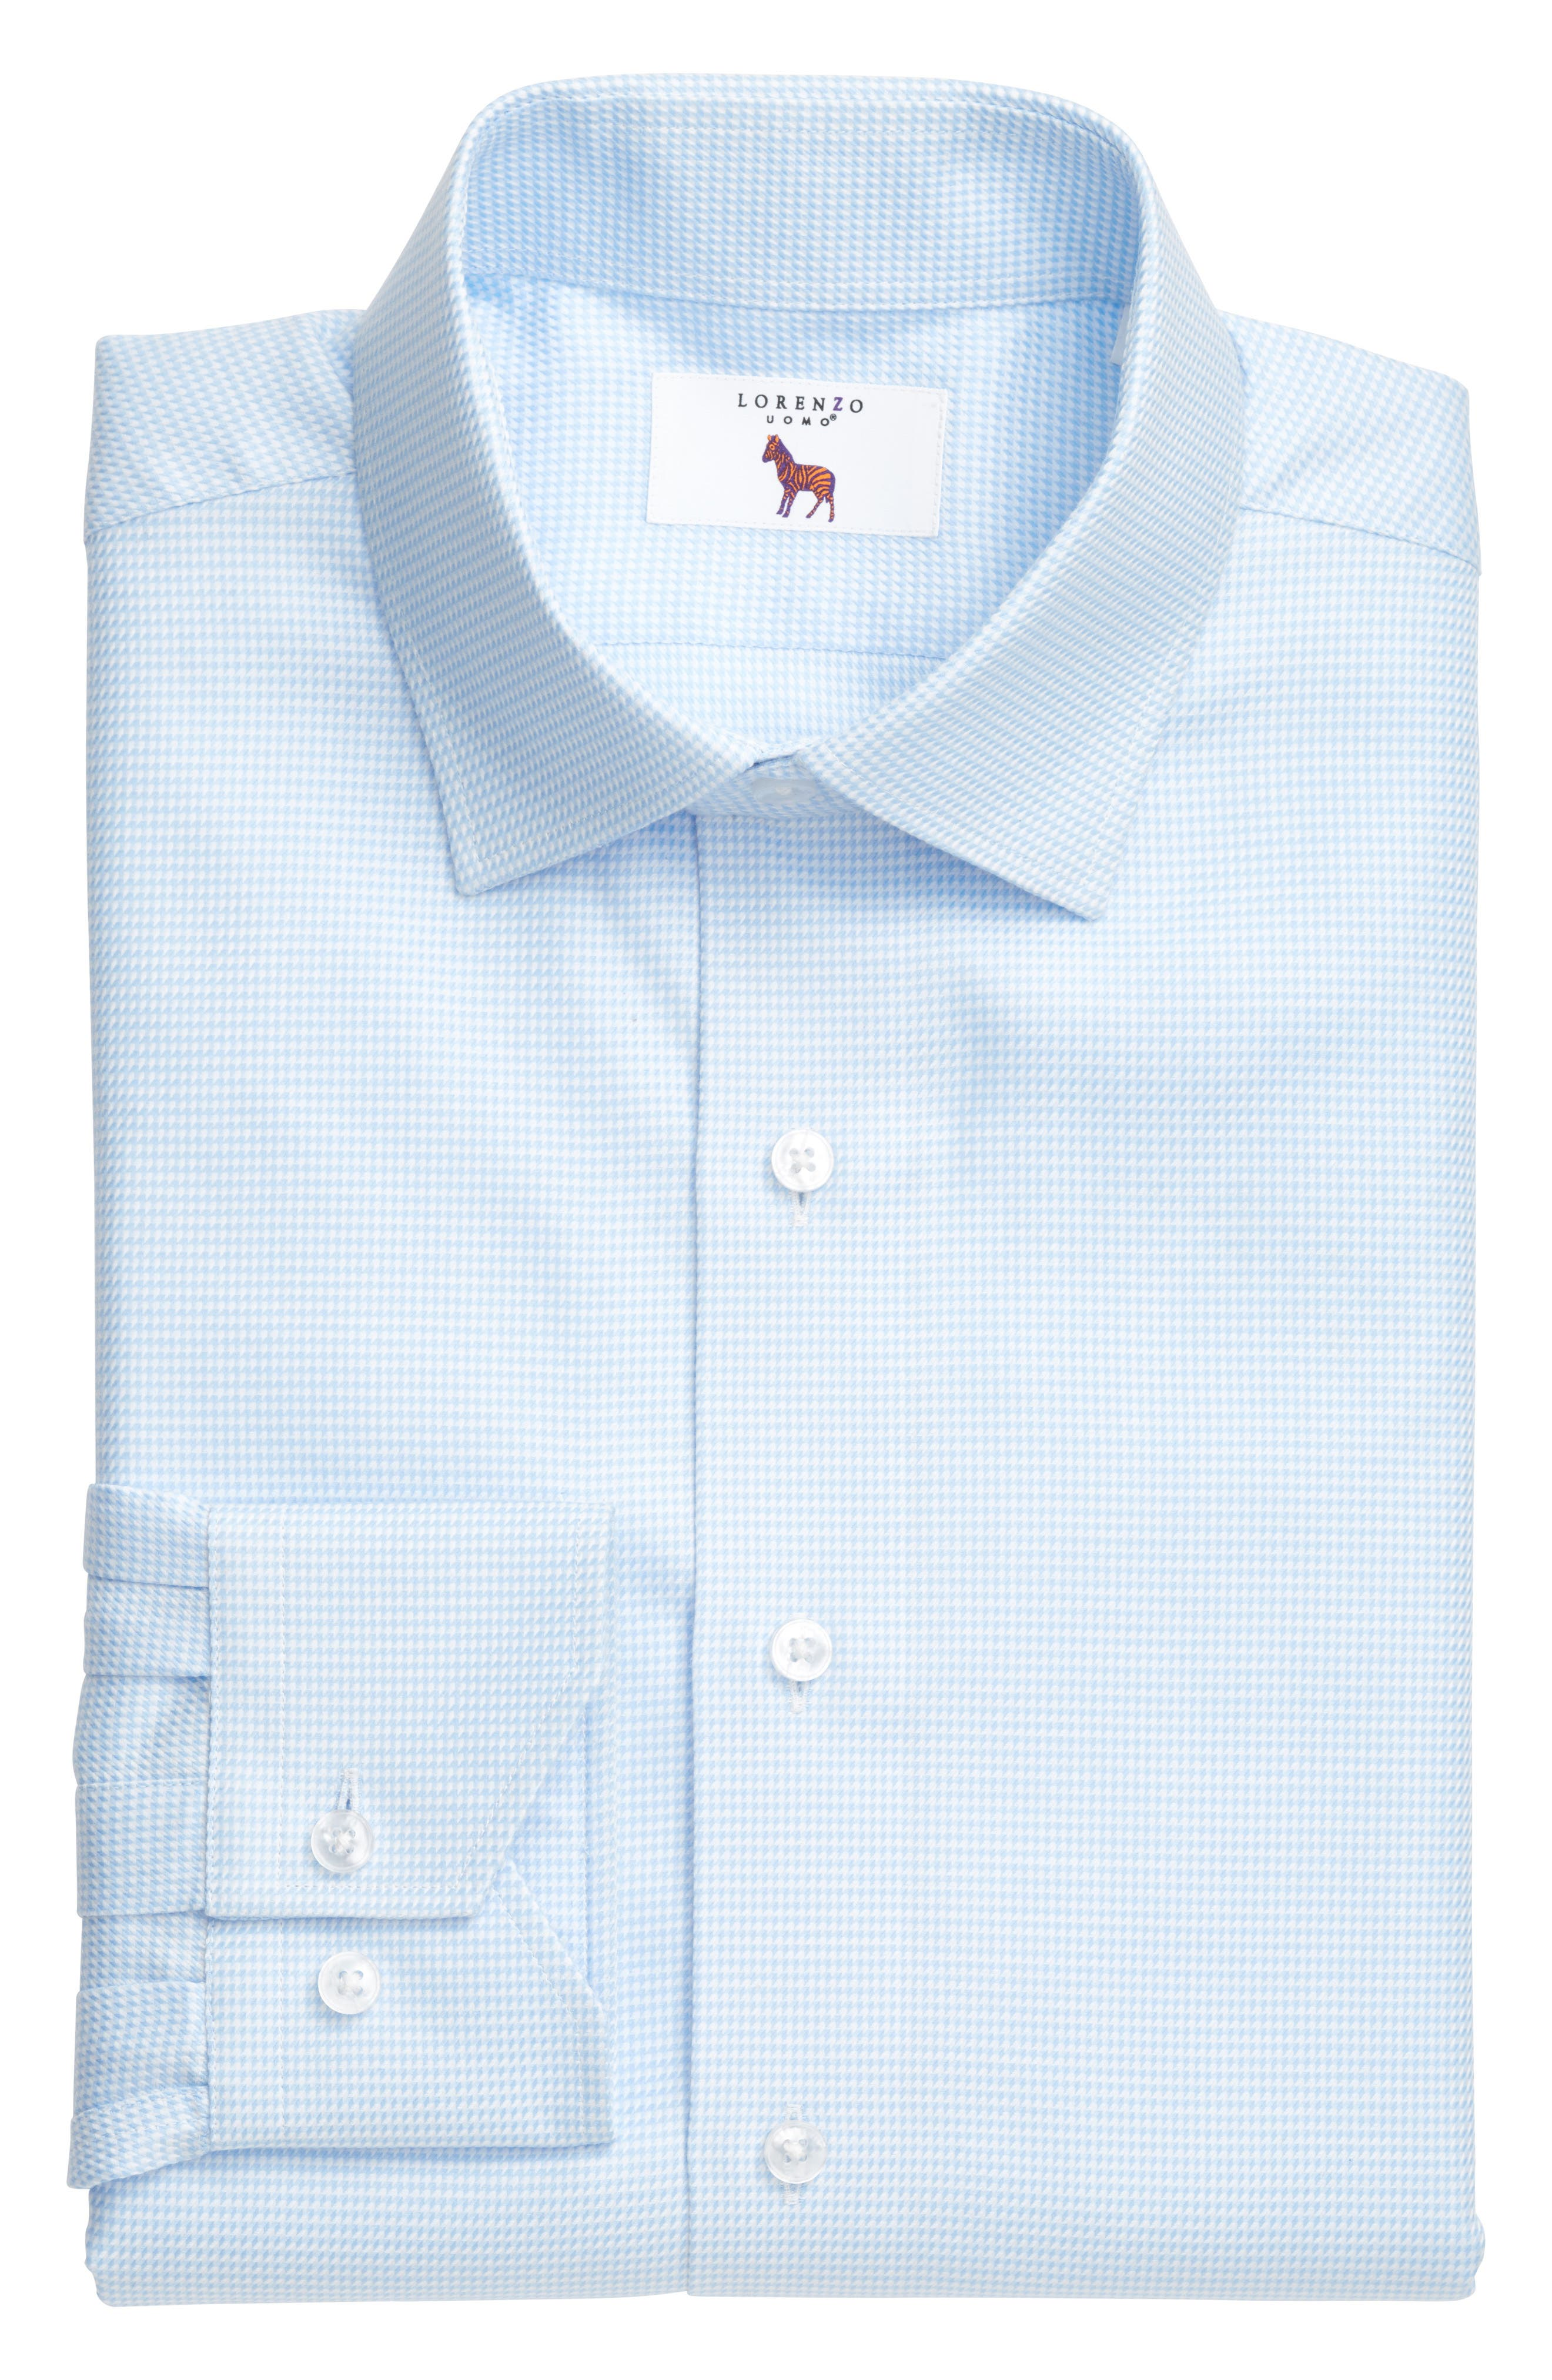 Trim Fit Houndstooth Dress Shirt,                             Alternate thumbnail 3, color,                             LIGHT BLUE